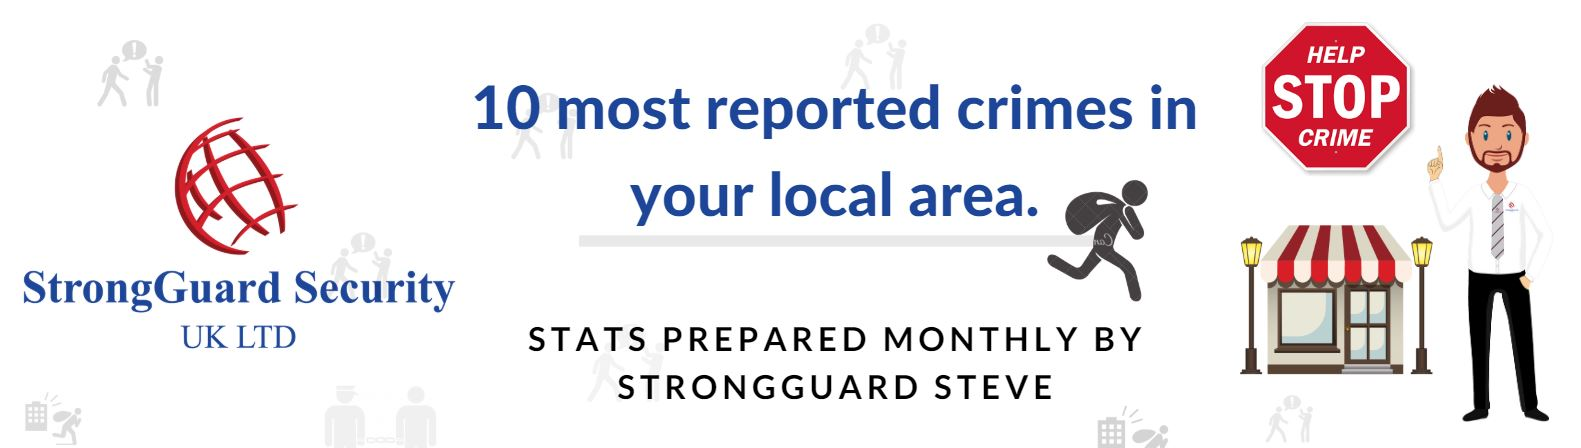 10 MOST REPORTED CRIMES IN ST HELENS - JUNE 2019